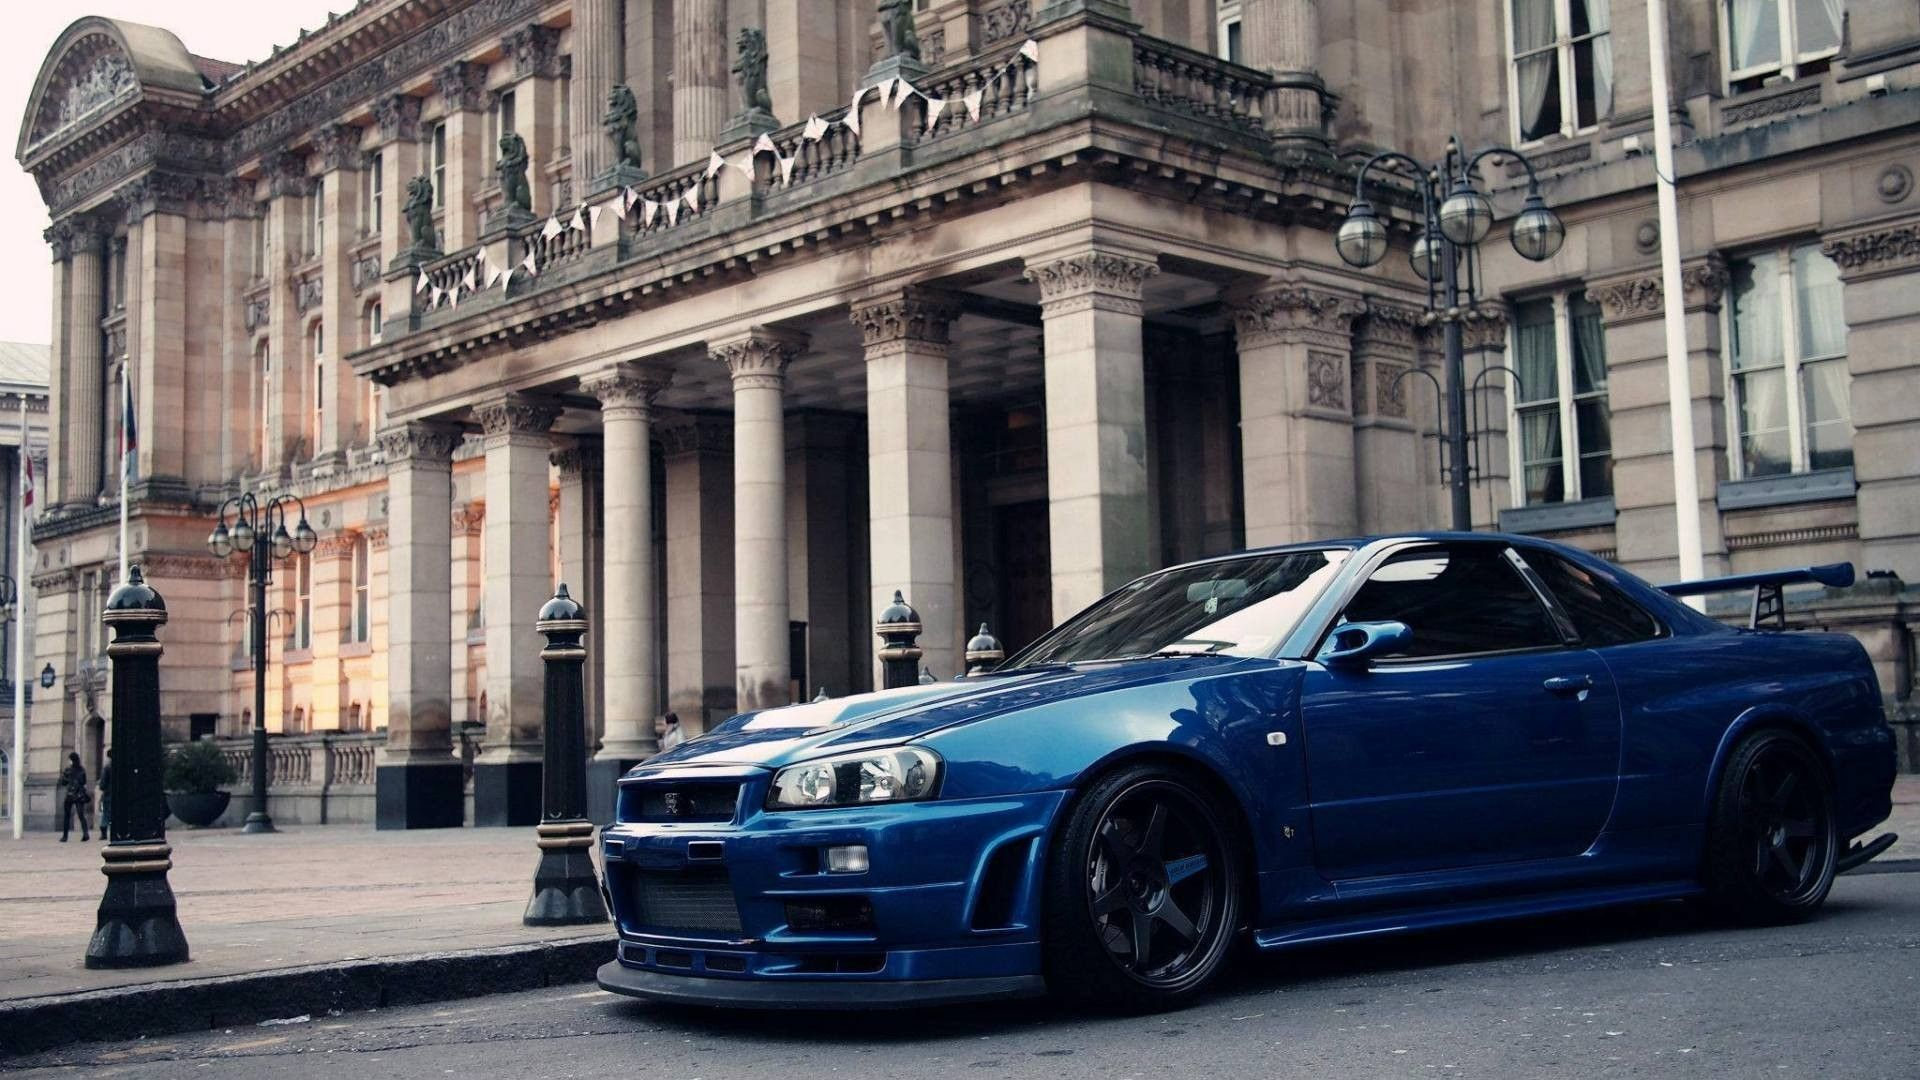 Nissan Skyline Wallpapers Top Free Nissan Skyline Backgrounds Wallpaperaccess